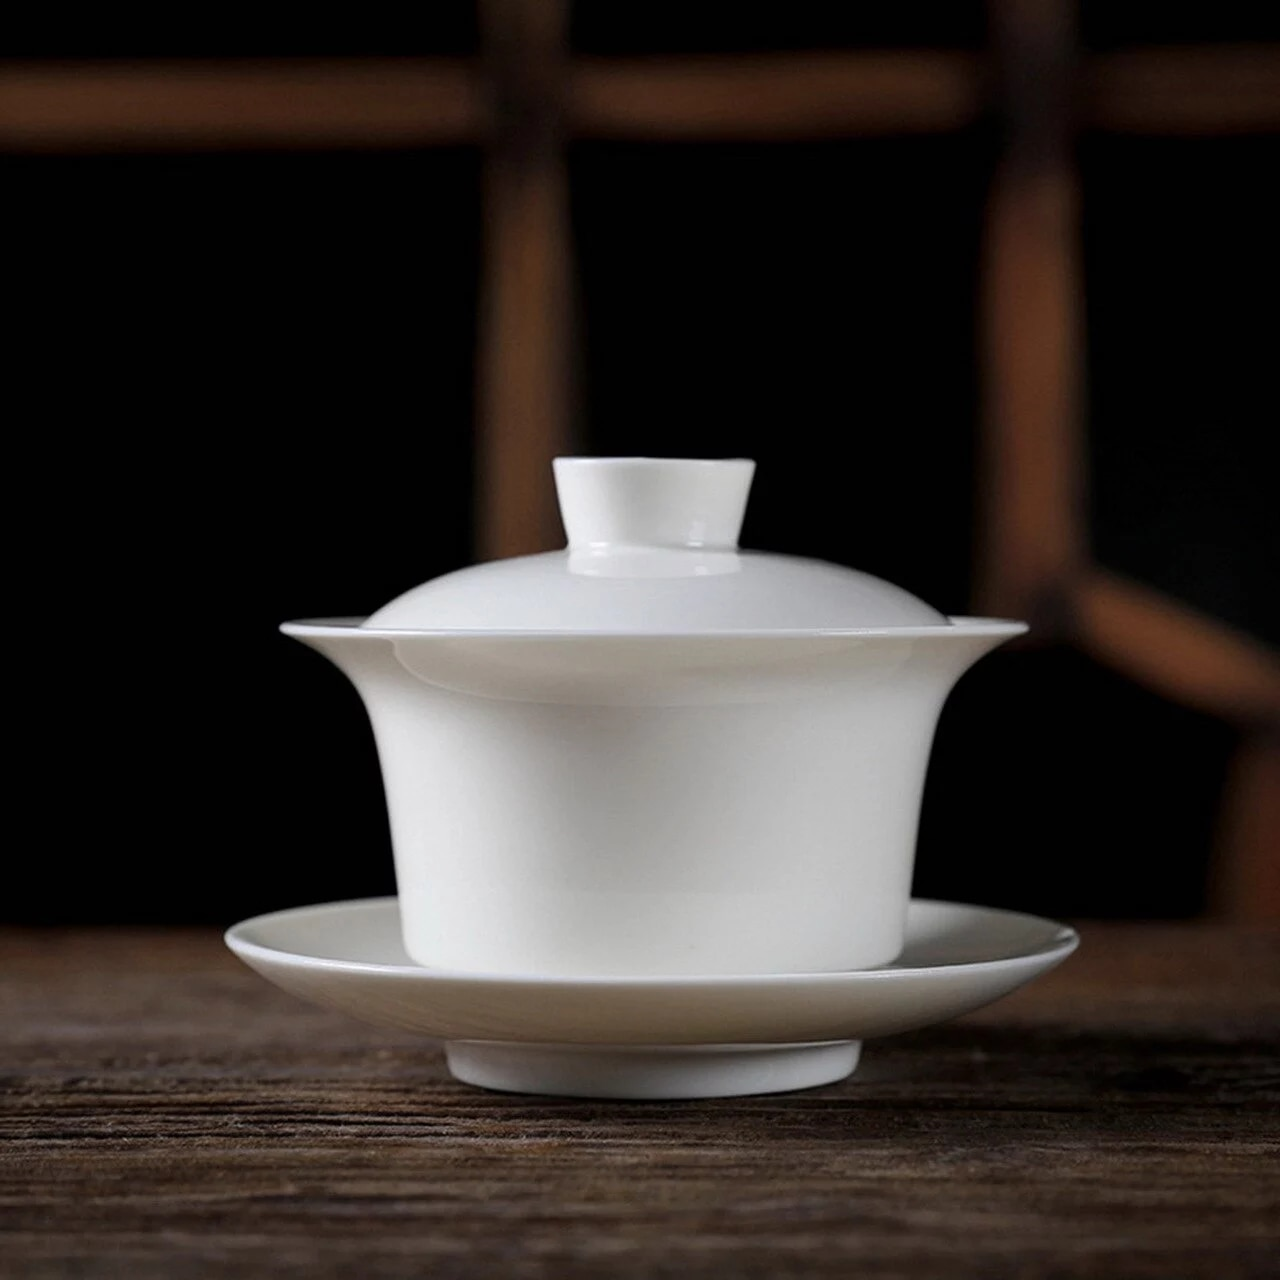 Large White Gongfu Tea Porcelain Gaiwan 200ml 6.76 fl oz|gaiwan  porcelain|porcelain teawhite gaiwan - AliExpress